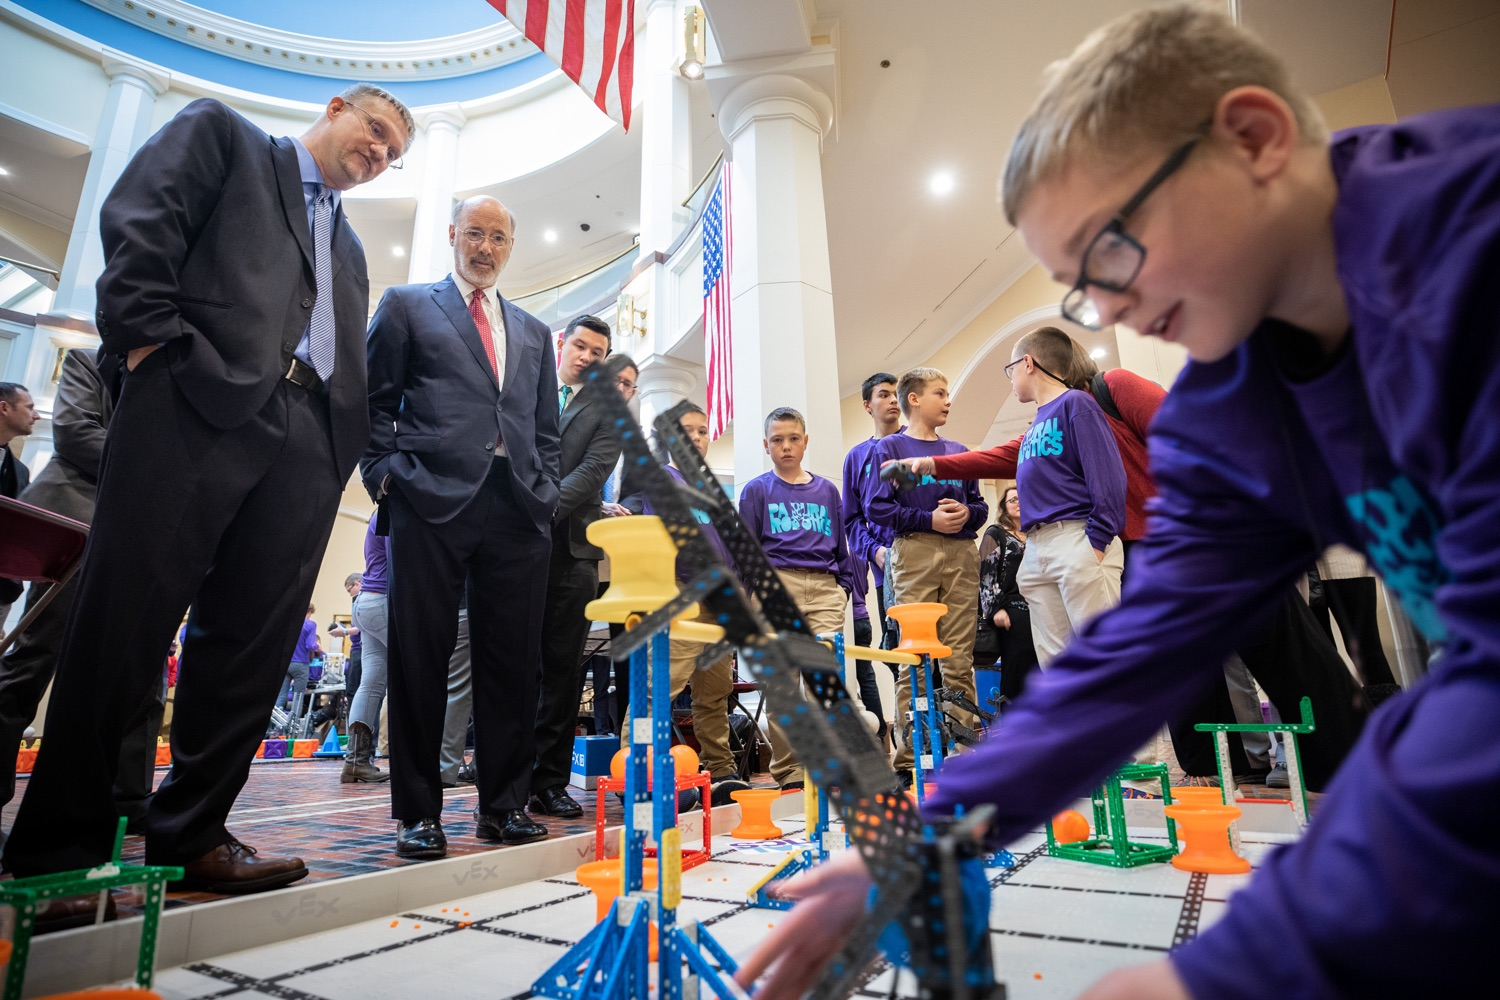 """<a href=""""https://filesource.wostreaming.net/commonwealthofpa/photo/17587_gov_pasmart_rural_robotics_dz_004.jpg"""" target=""""_blank"""">⇣Download Photo<br></a>Pennsylvania Governor Tom Wolf meeting with students at the robotics demonstration.  Celebrating the success of the PAsmart workforce development program to create educational opportunities at schools across the commonwealth, Governor Tom Wolf welcomed more than 50 students from the Pennsylvania Rural Robotics Initiative to the Capitol today. The students from nine western Pennsylvania school districts showcased their skills in coding, robotics and drone technology. The Wolf administration awarded the initiative a $299,000 PAsmart Advancing Grant earlier this year. Harrisburg, PA  Tuesday, November 12, 2019"""